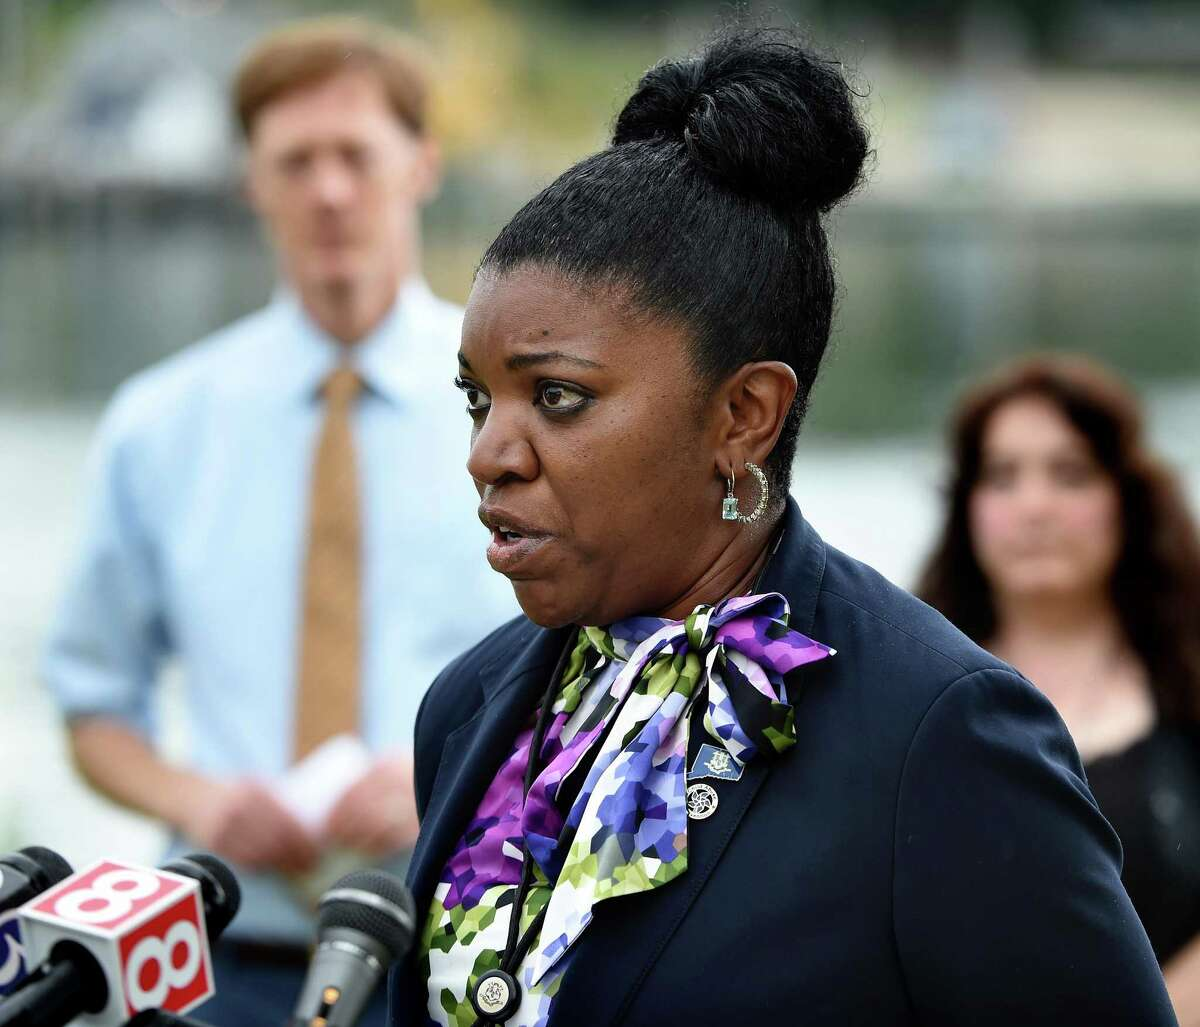 Connecticut Department of Children and Families Commissioner Vannessa Dorantes speaks at the dedication of a tree at an event, Hope Grows Here, to victims of domestic violence by the Hope Family Justice Center at the Quinnipiac River Park in New Haven on August 9, 2021.